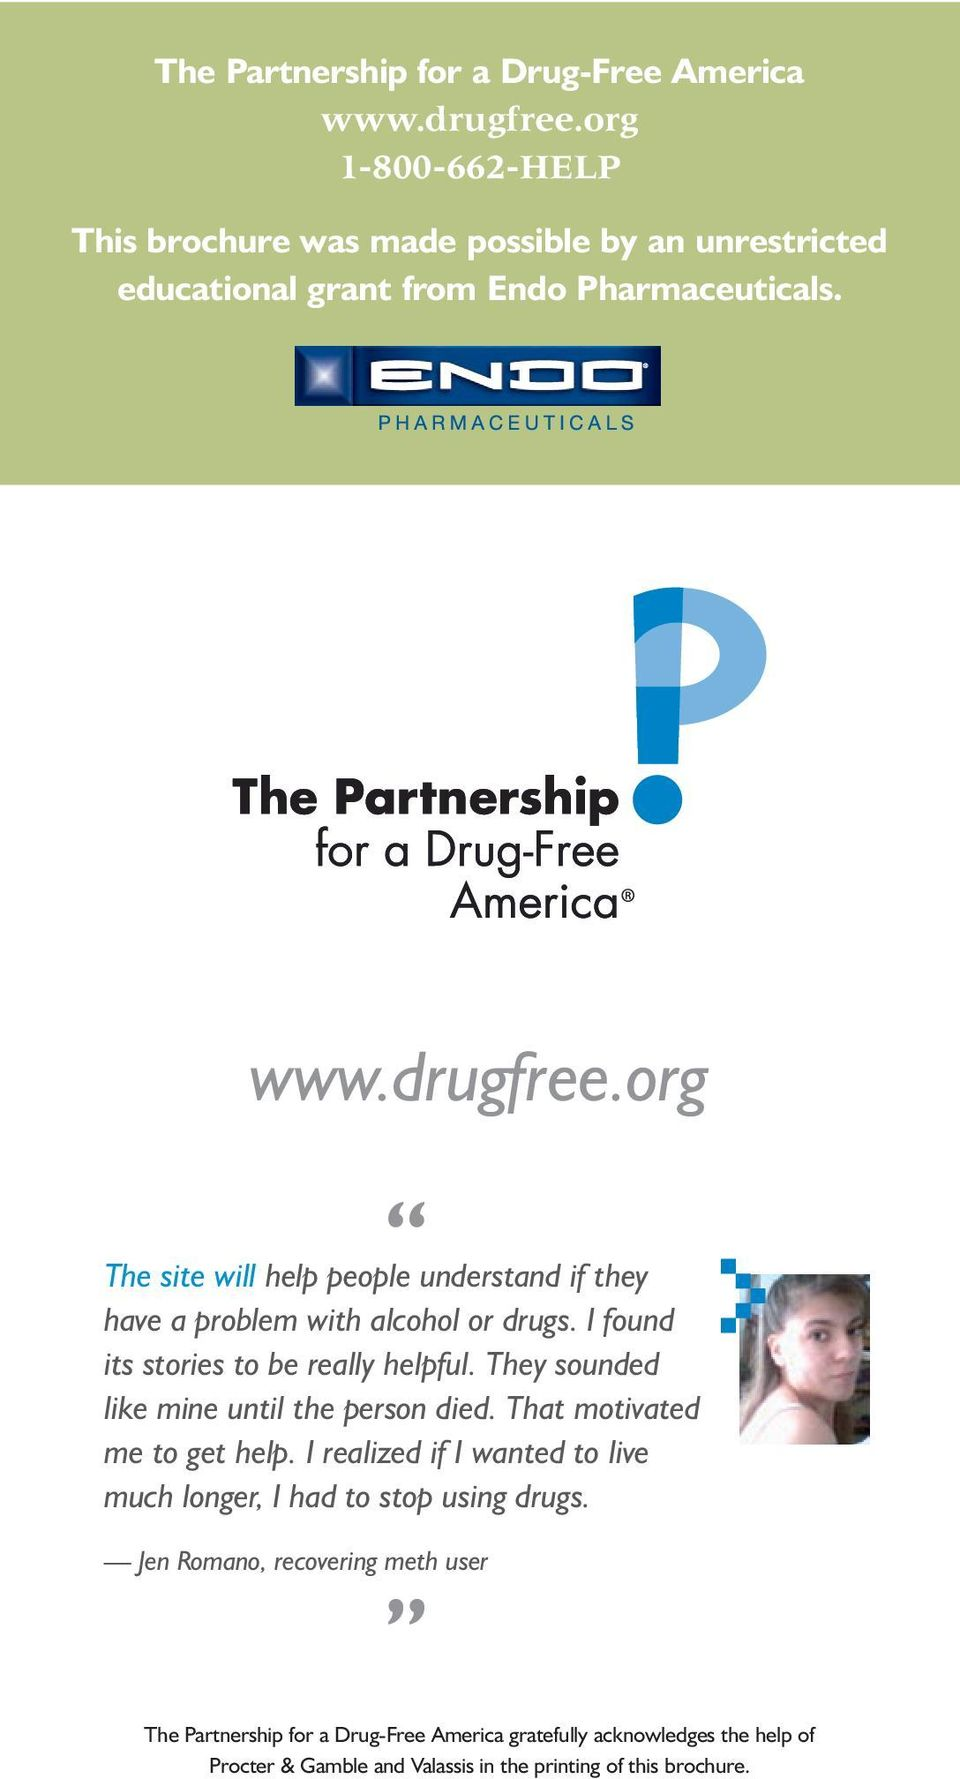 org The site will help people understand if they have a problem with alcohol or drugs. I found its stories to be really helpful.